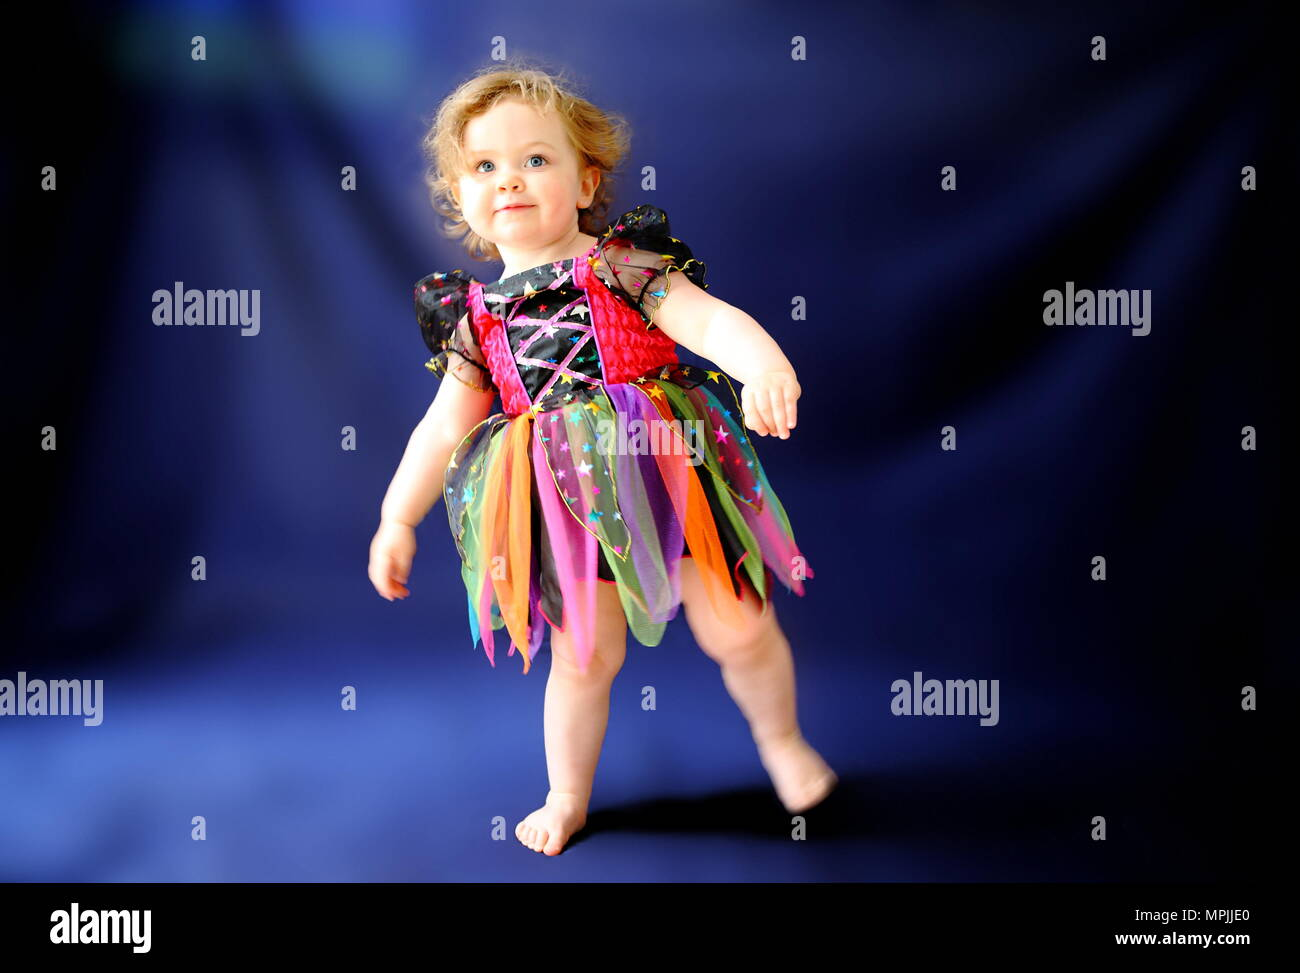 a young girl looks like a porcelain doll toy like dressed in halloween fairy dress on an inky blue background age 18 to 24 months june 2010 image by